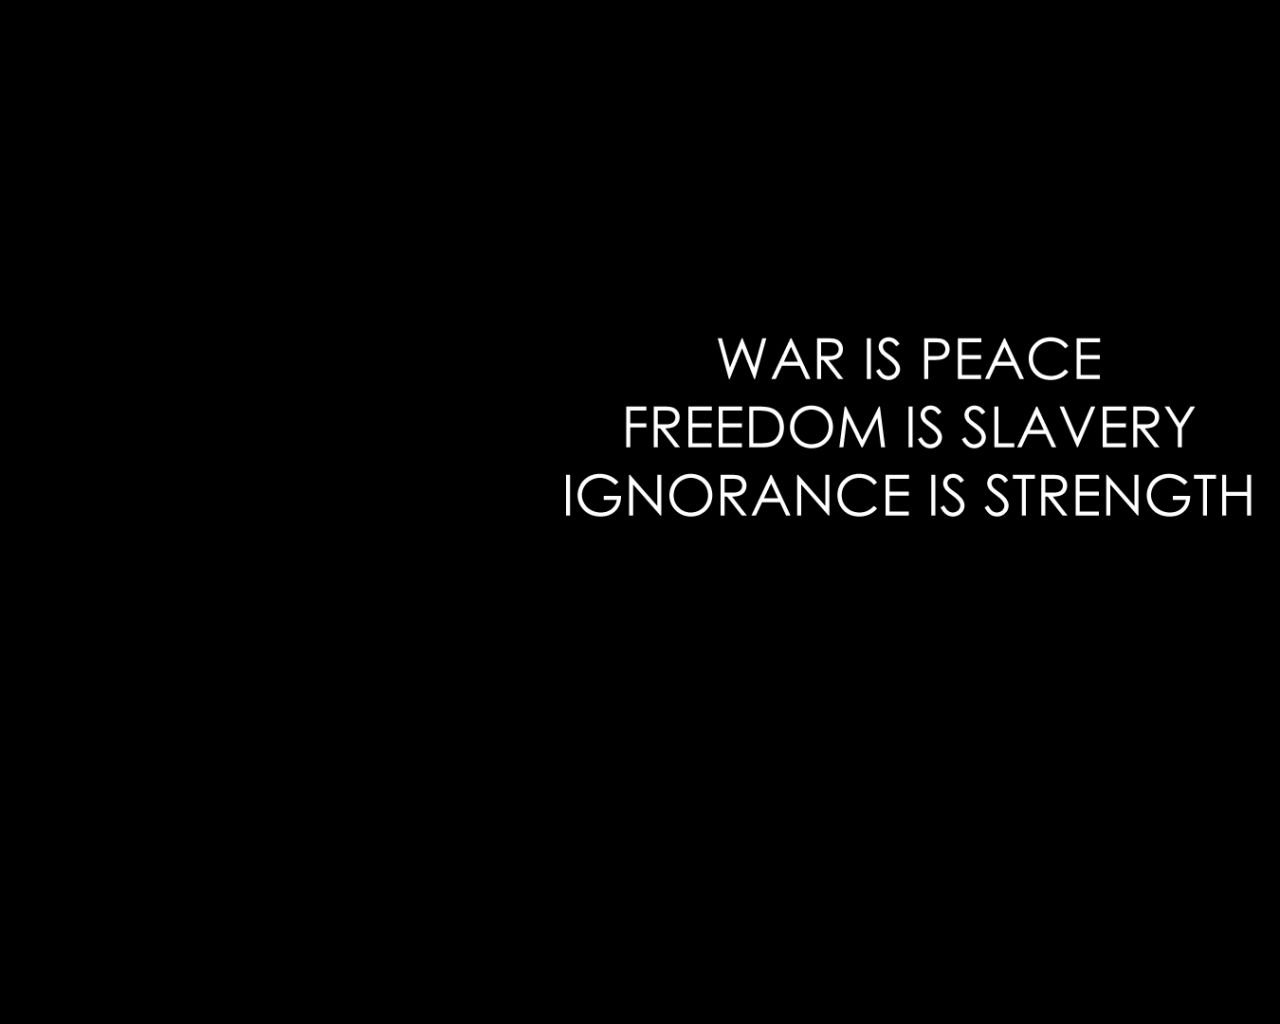 is ignorance love quotes 1984 strength peace forward 1984 quotes ...